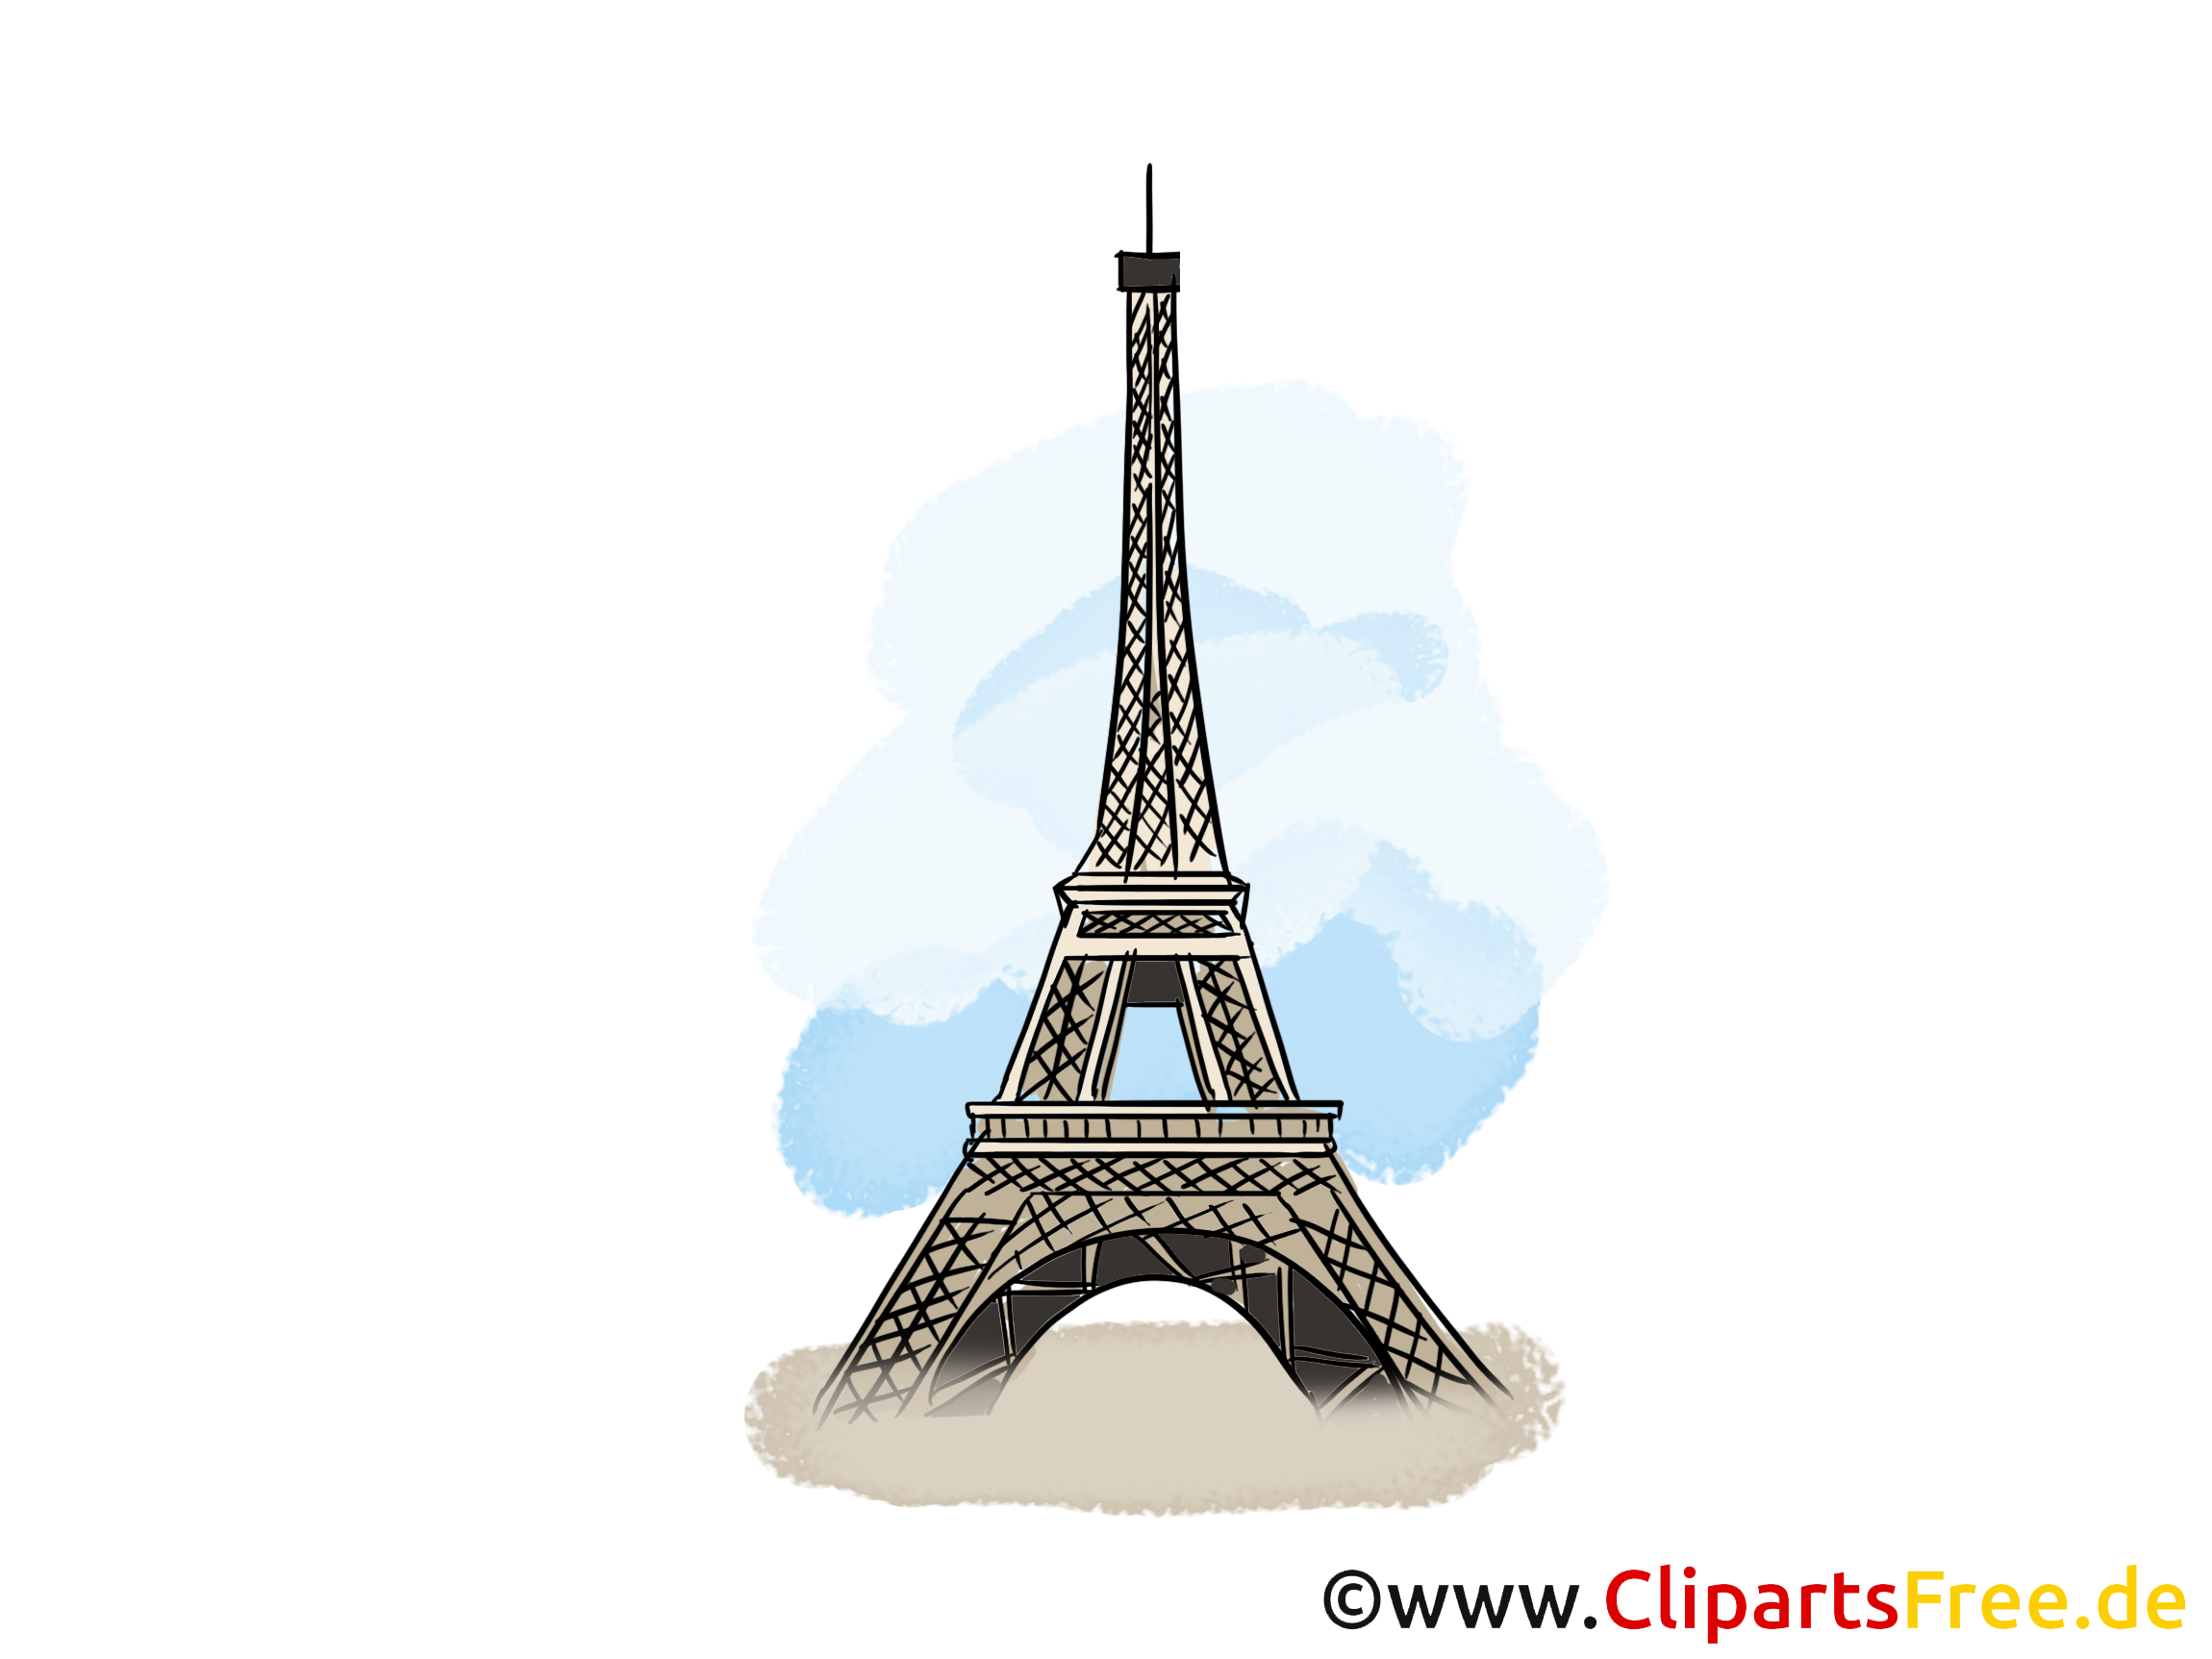 tour eiffel clipart. Black Bedroom Furniture Sets. Home Design Ideas